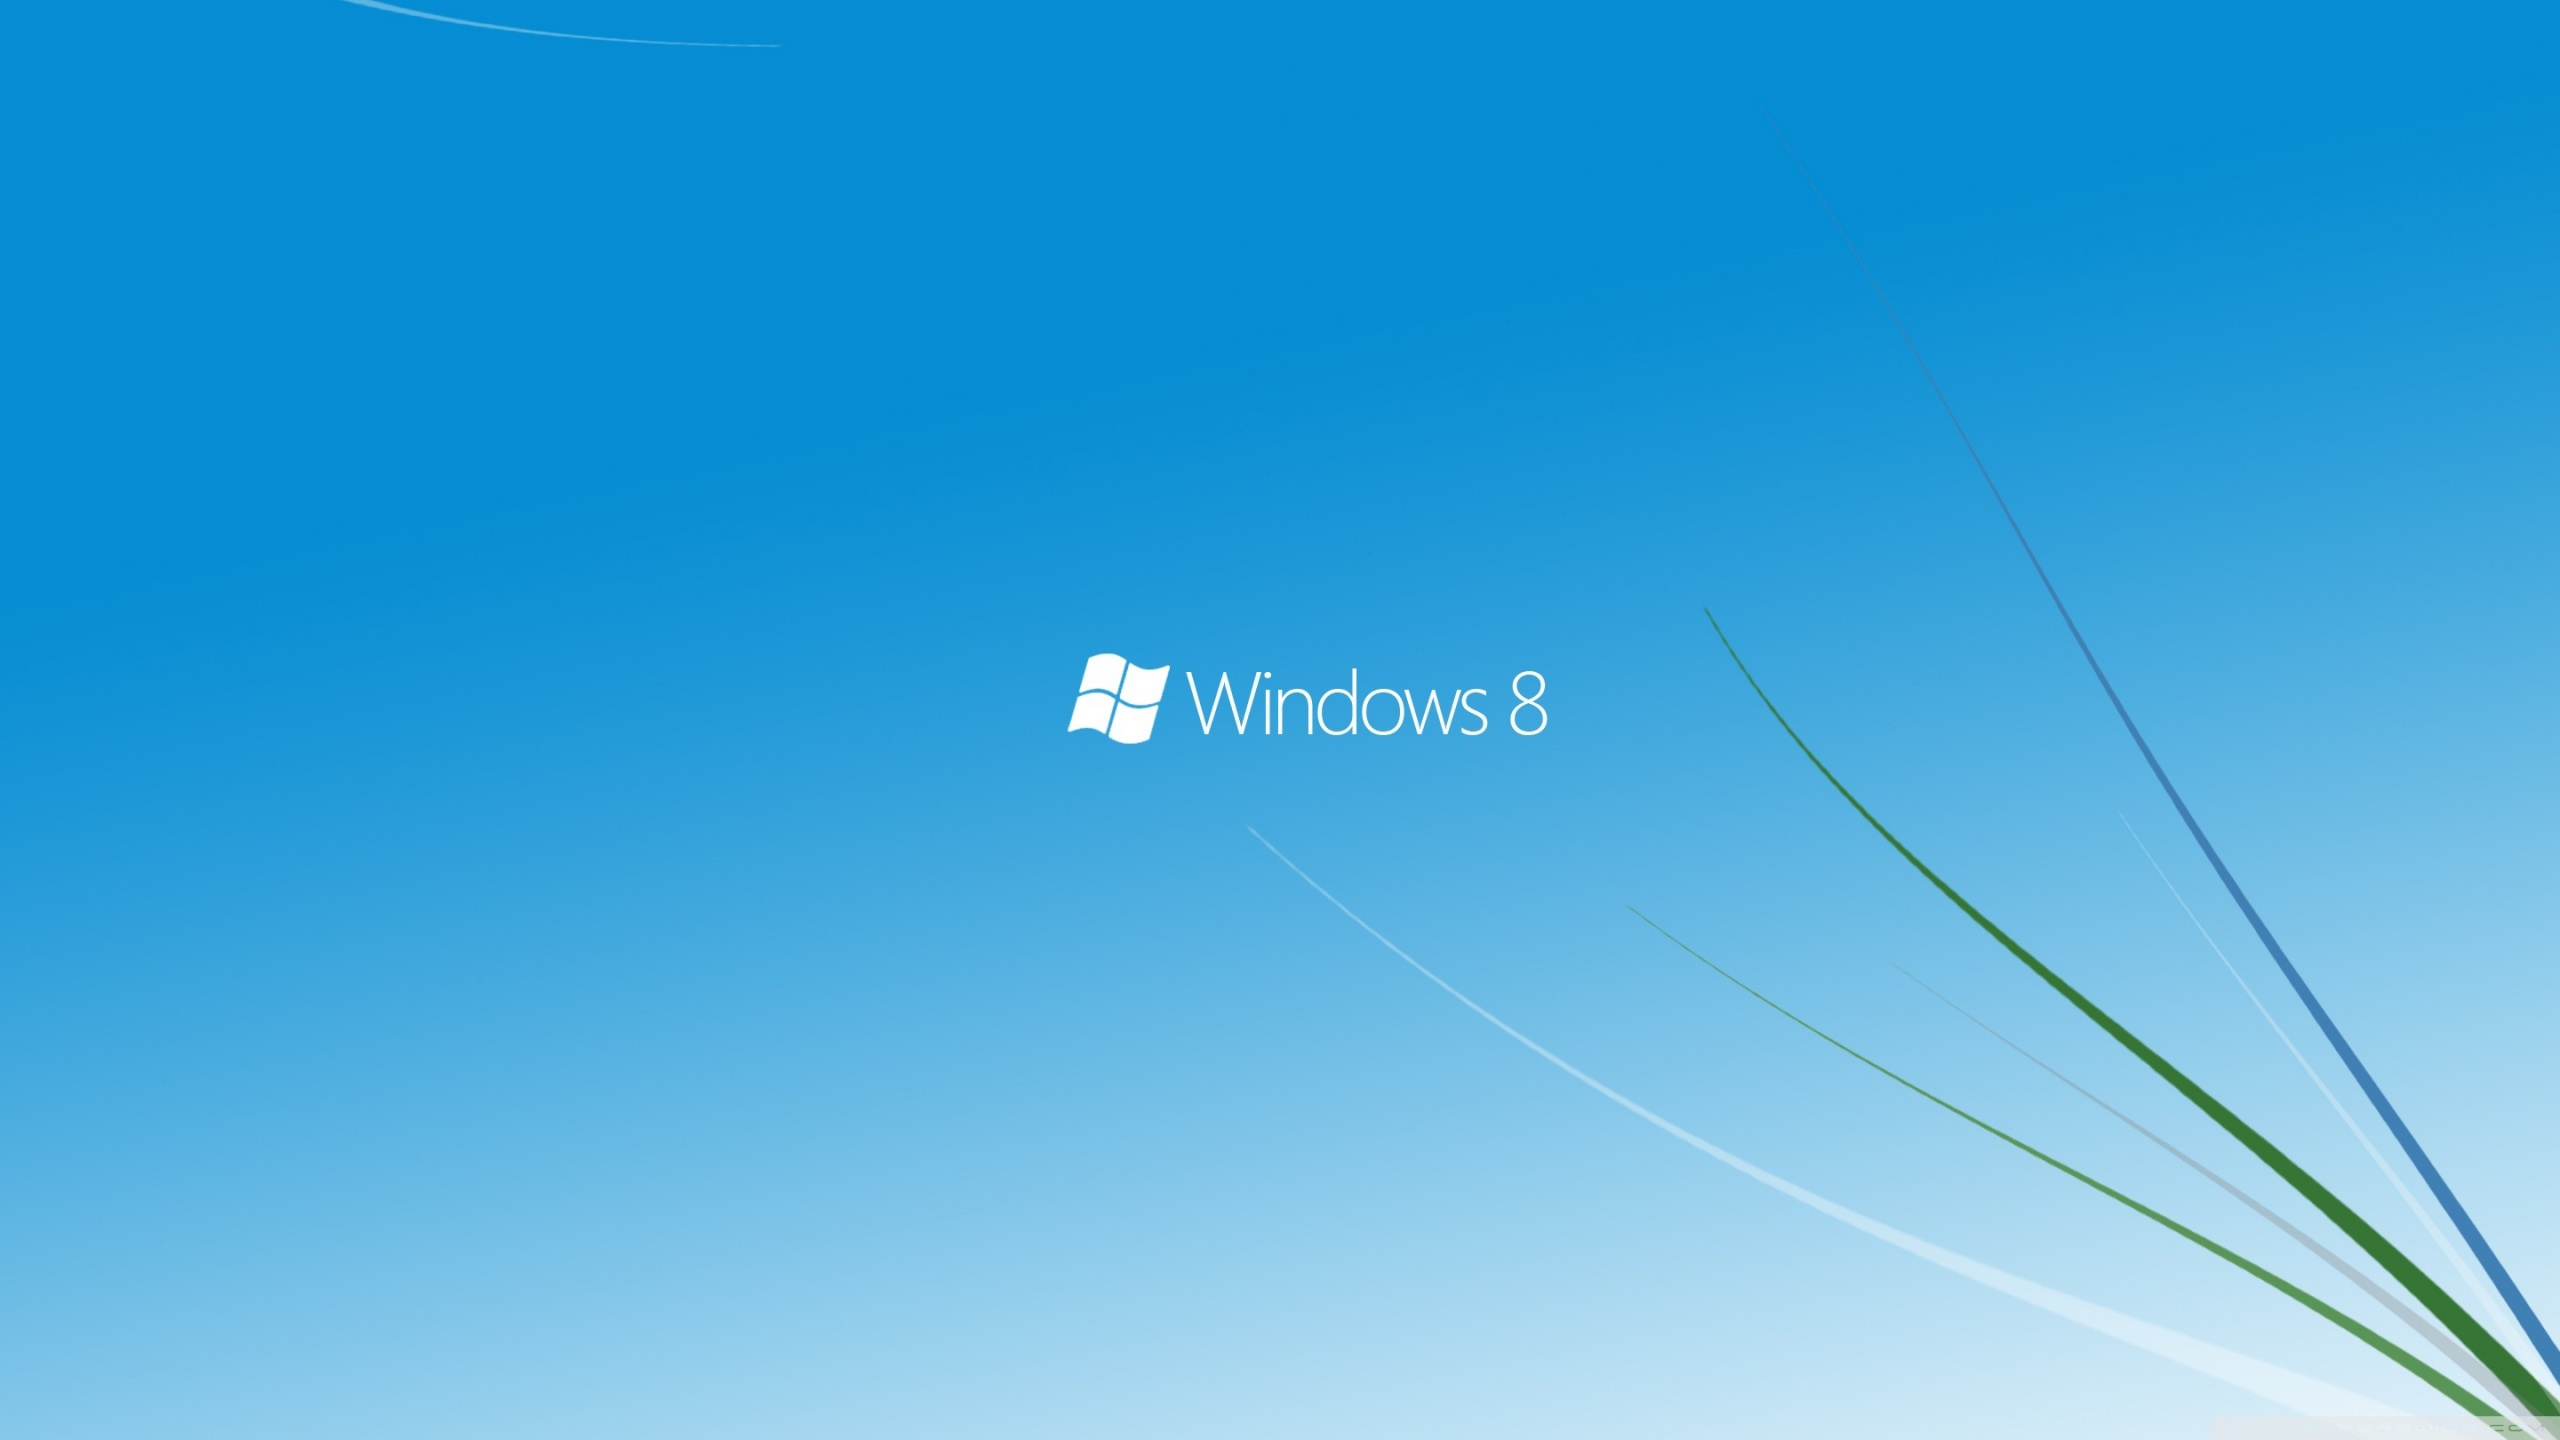 collection of windows wallpaper on hdwallpapers 2560a—1440